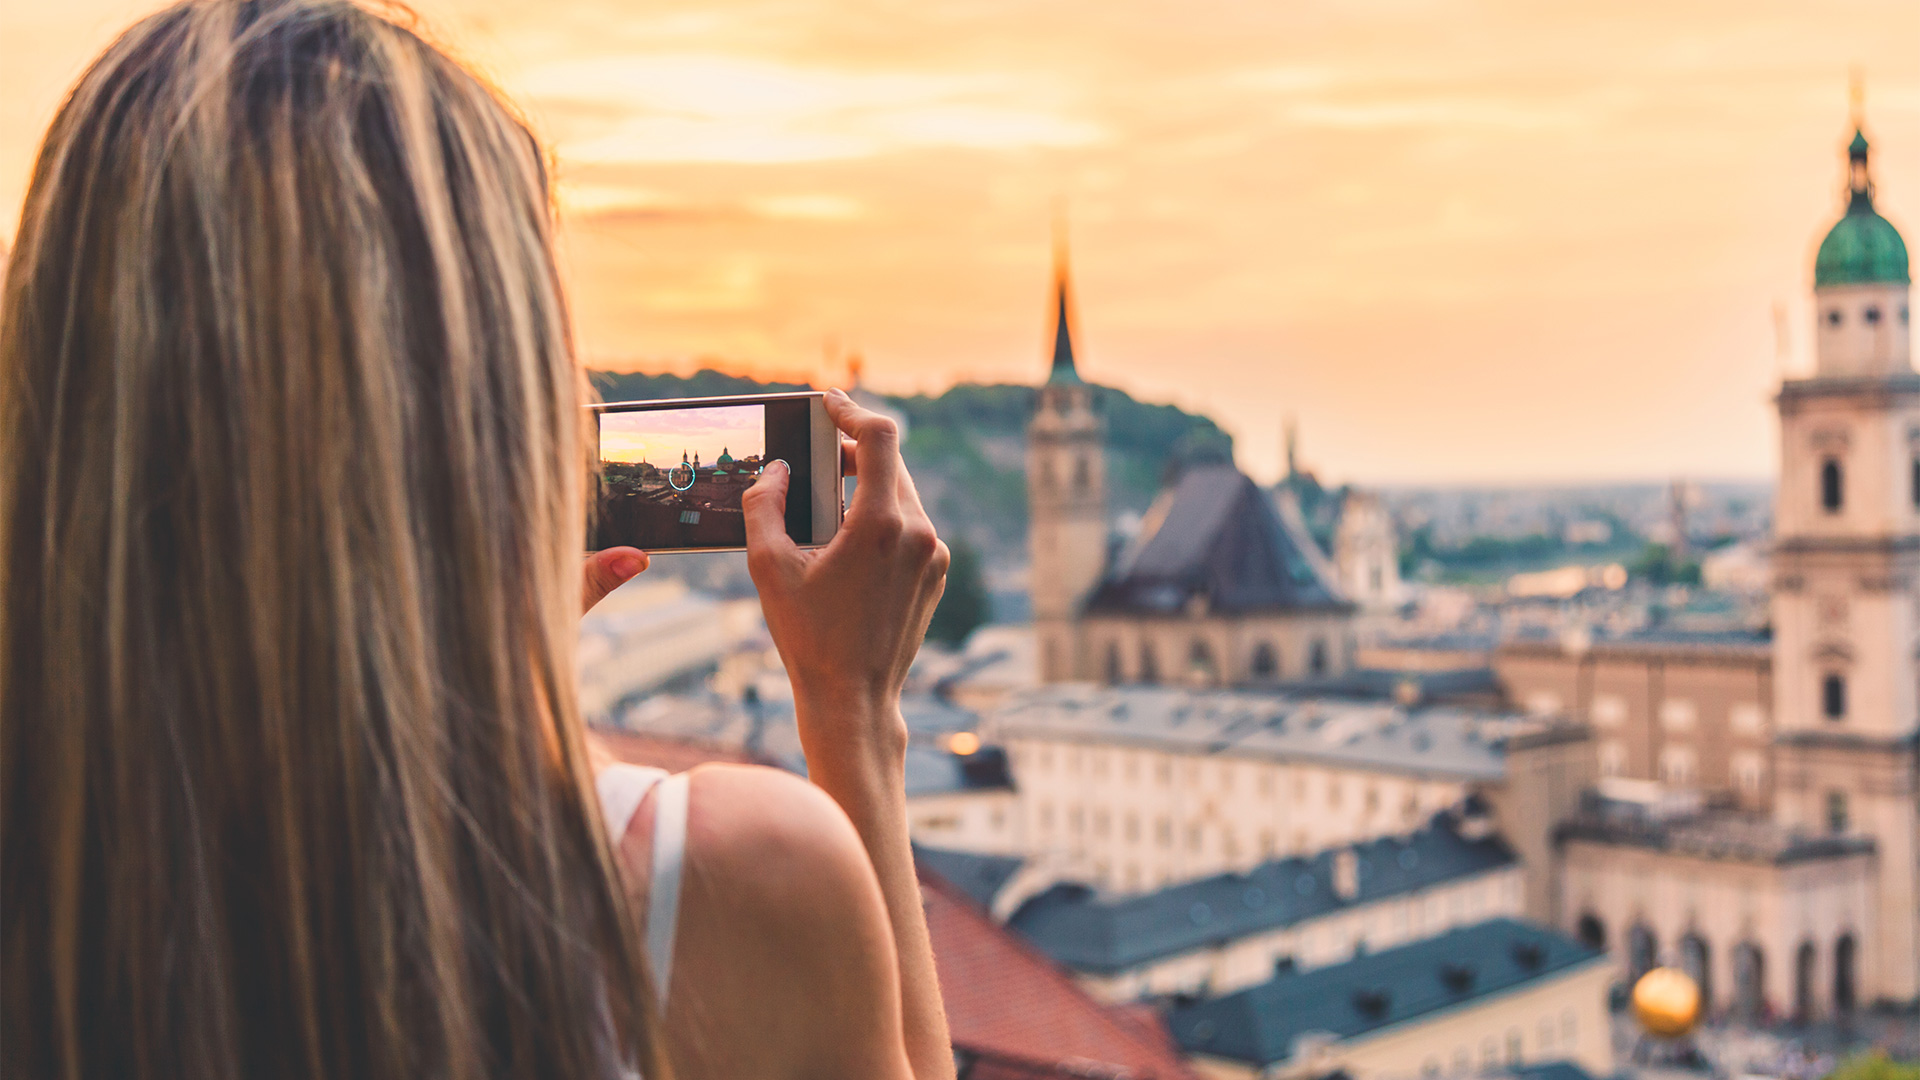 Austria: 'Let's go – to the comeback of domestic tourism'